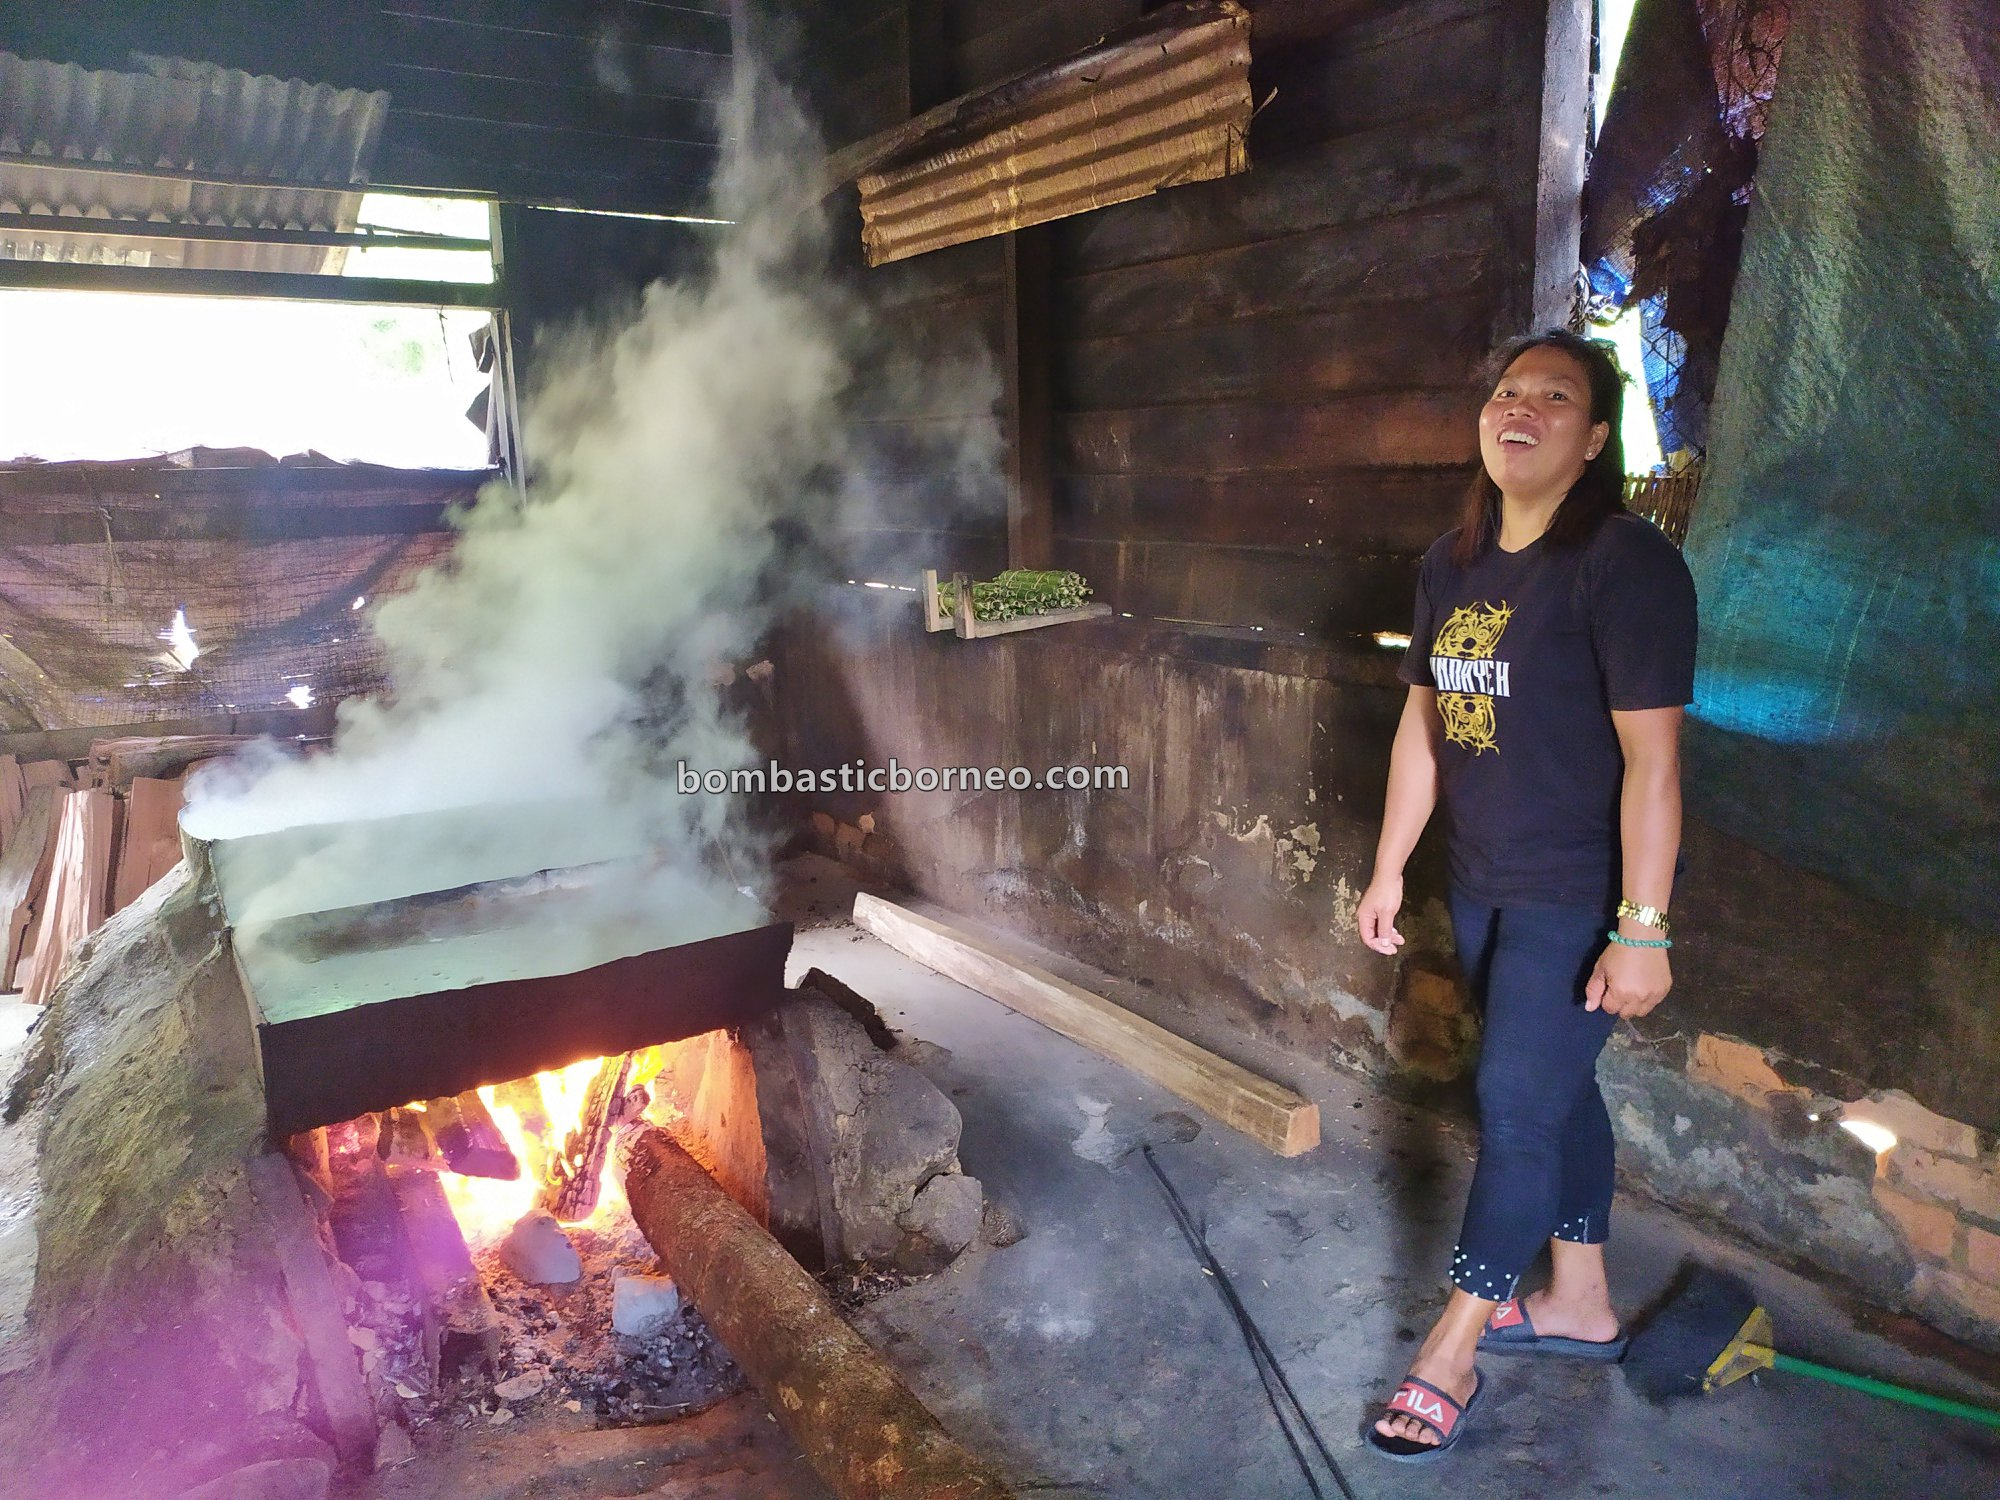 pengolahan garam gunung, Long Midang, authentic, traditional, exploration, backpackers, Krayan, Interior village, Objek wisata, Tourist attraction, travel guide, Trans Borneo, 探索婆罗洲游踪, 印尼北加里曼丹, 高山盐旅游景点,